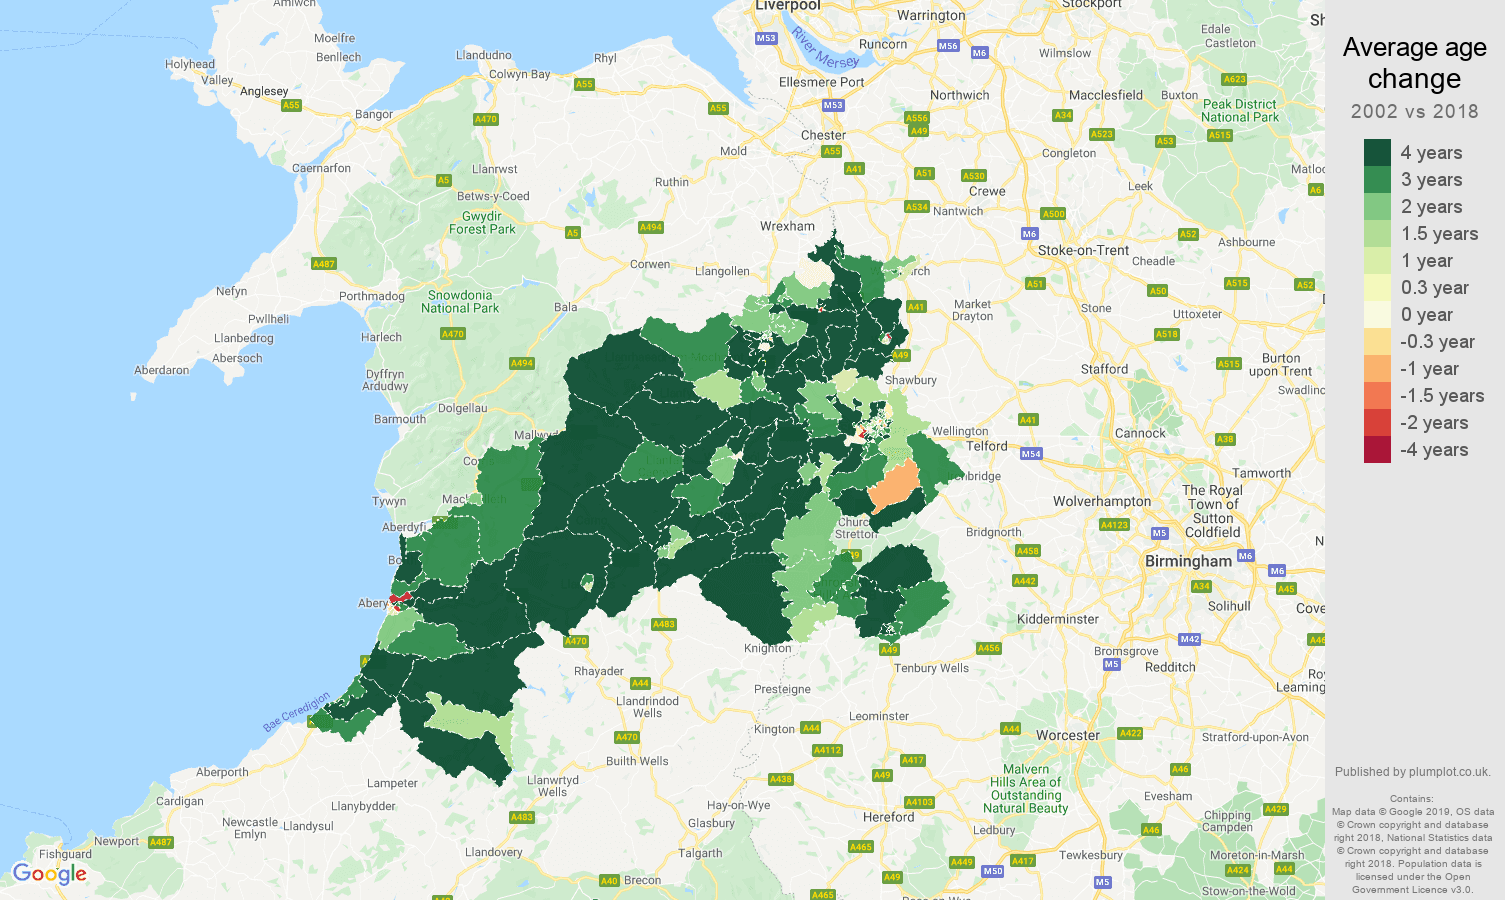 Shrewsbury average age change map